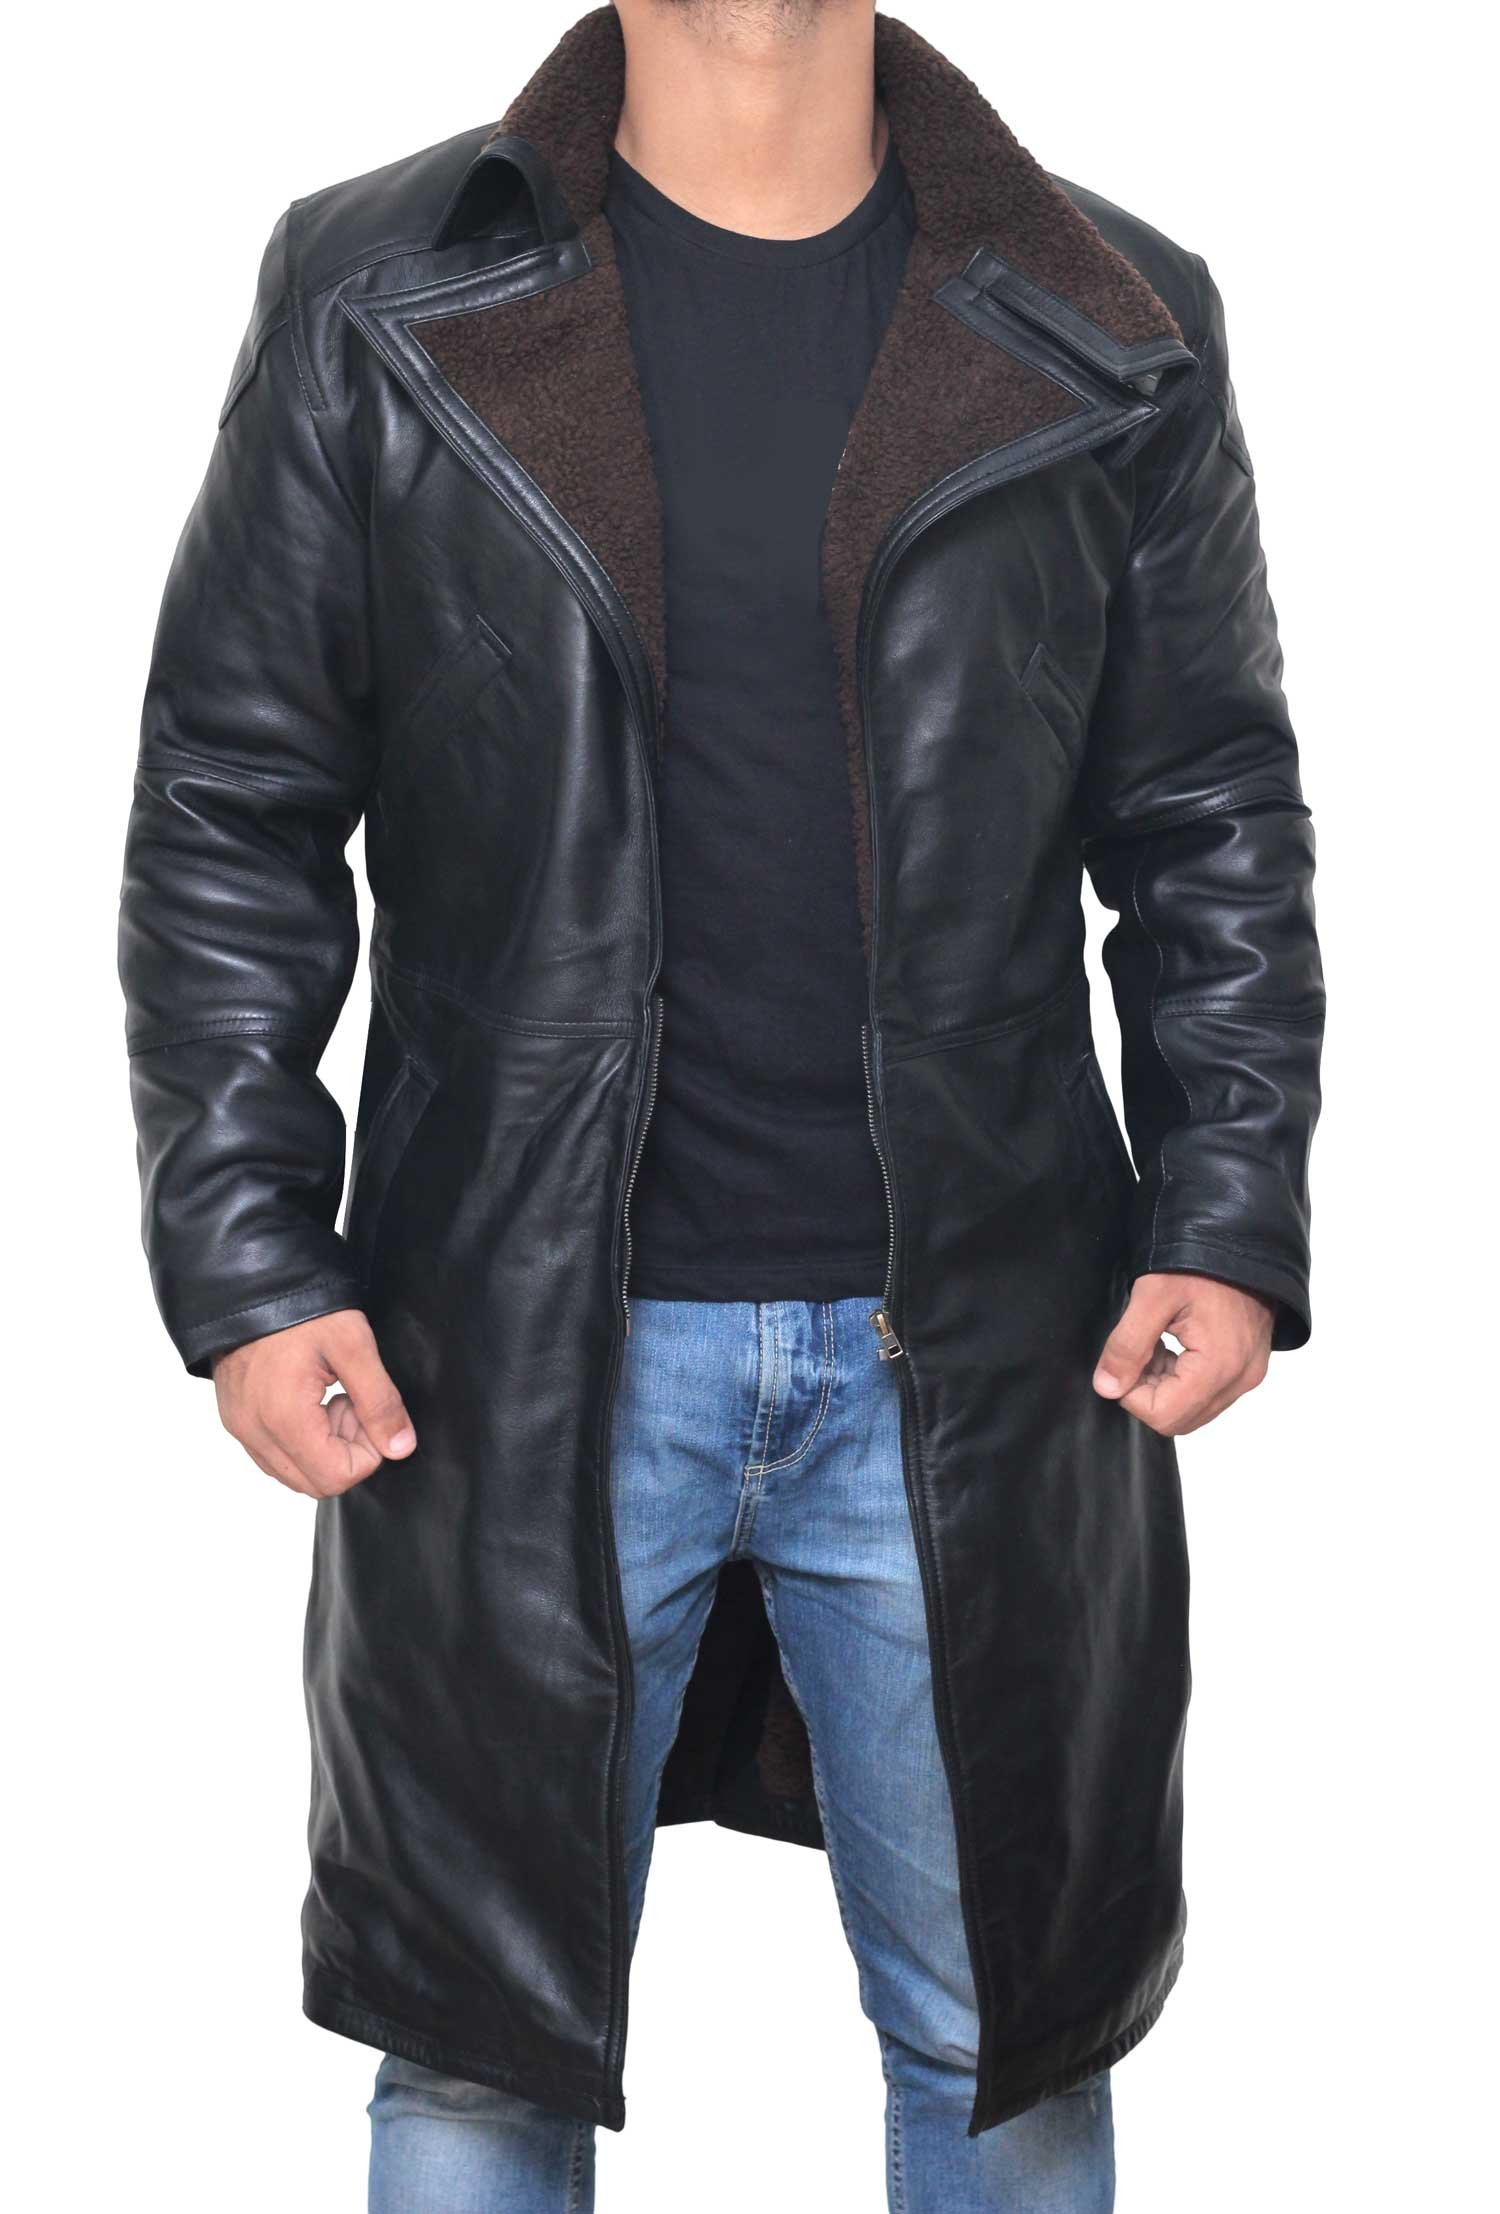 Decrum Blade Runner Costume - Synthetic Leather Jacket Leather Jacket | Black, M